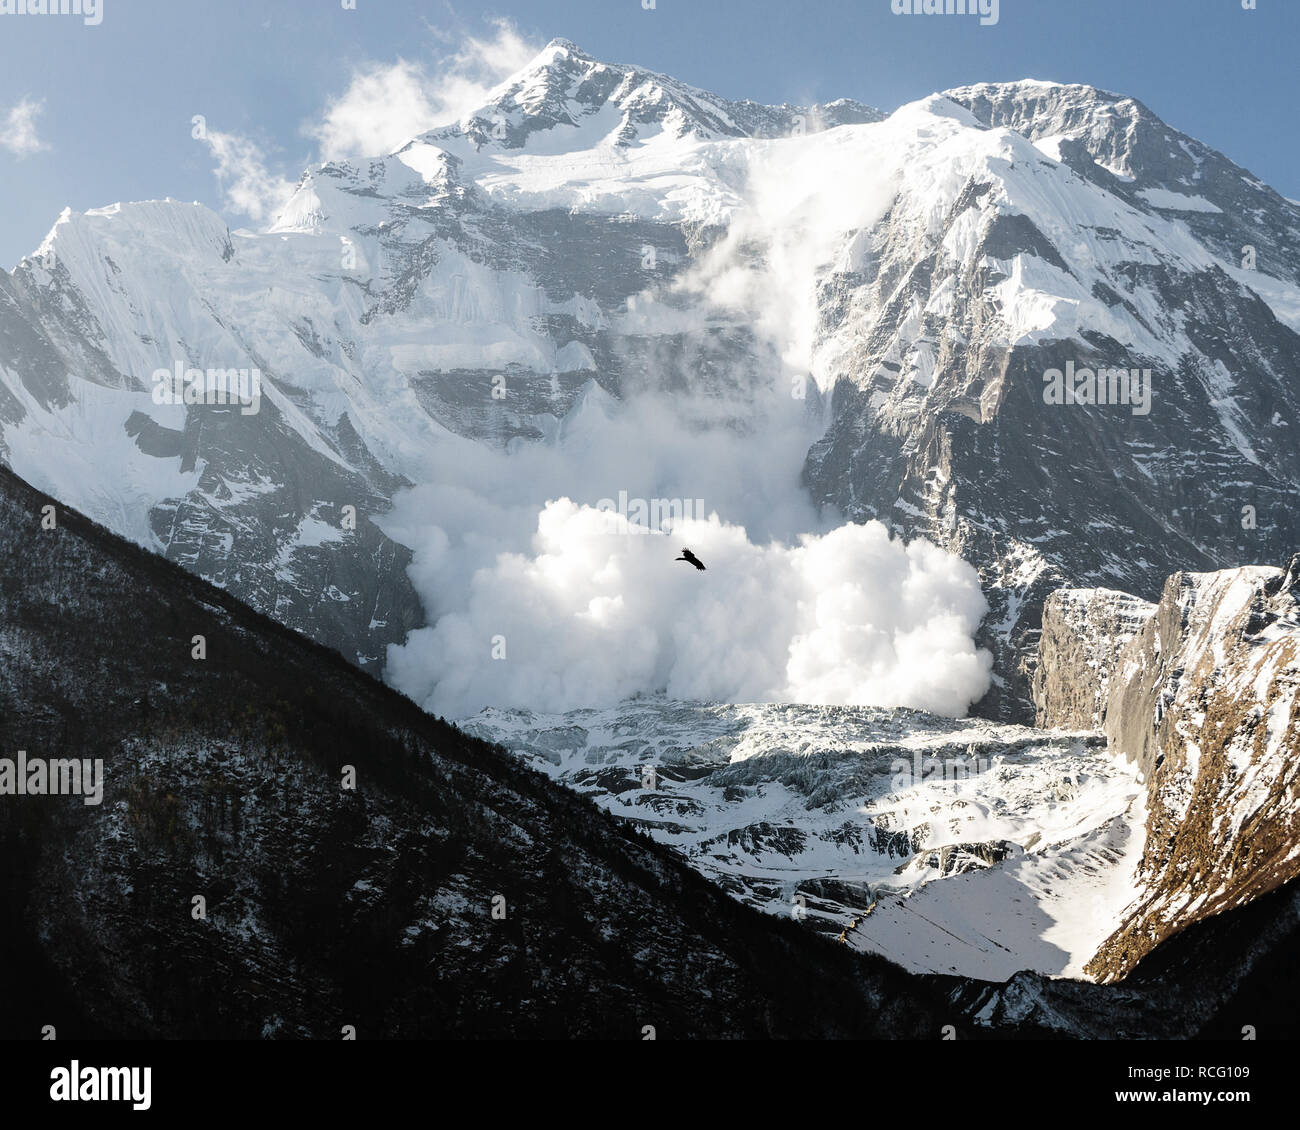 Bird soaring in Upper Pisang and a snow avalanche on Annapurna II mountain, Annapurna Circuit, Nepal - Stock Image